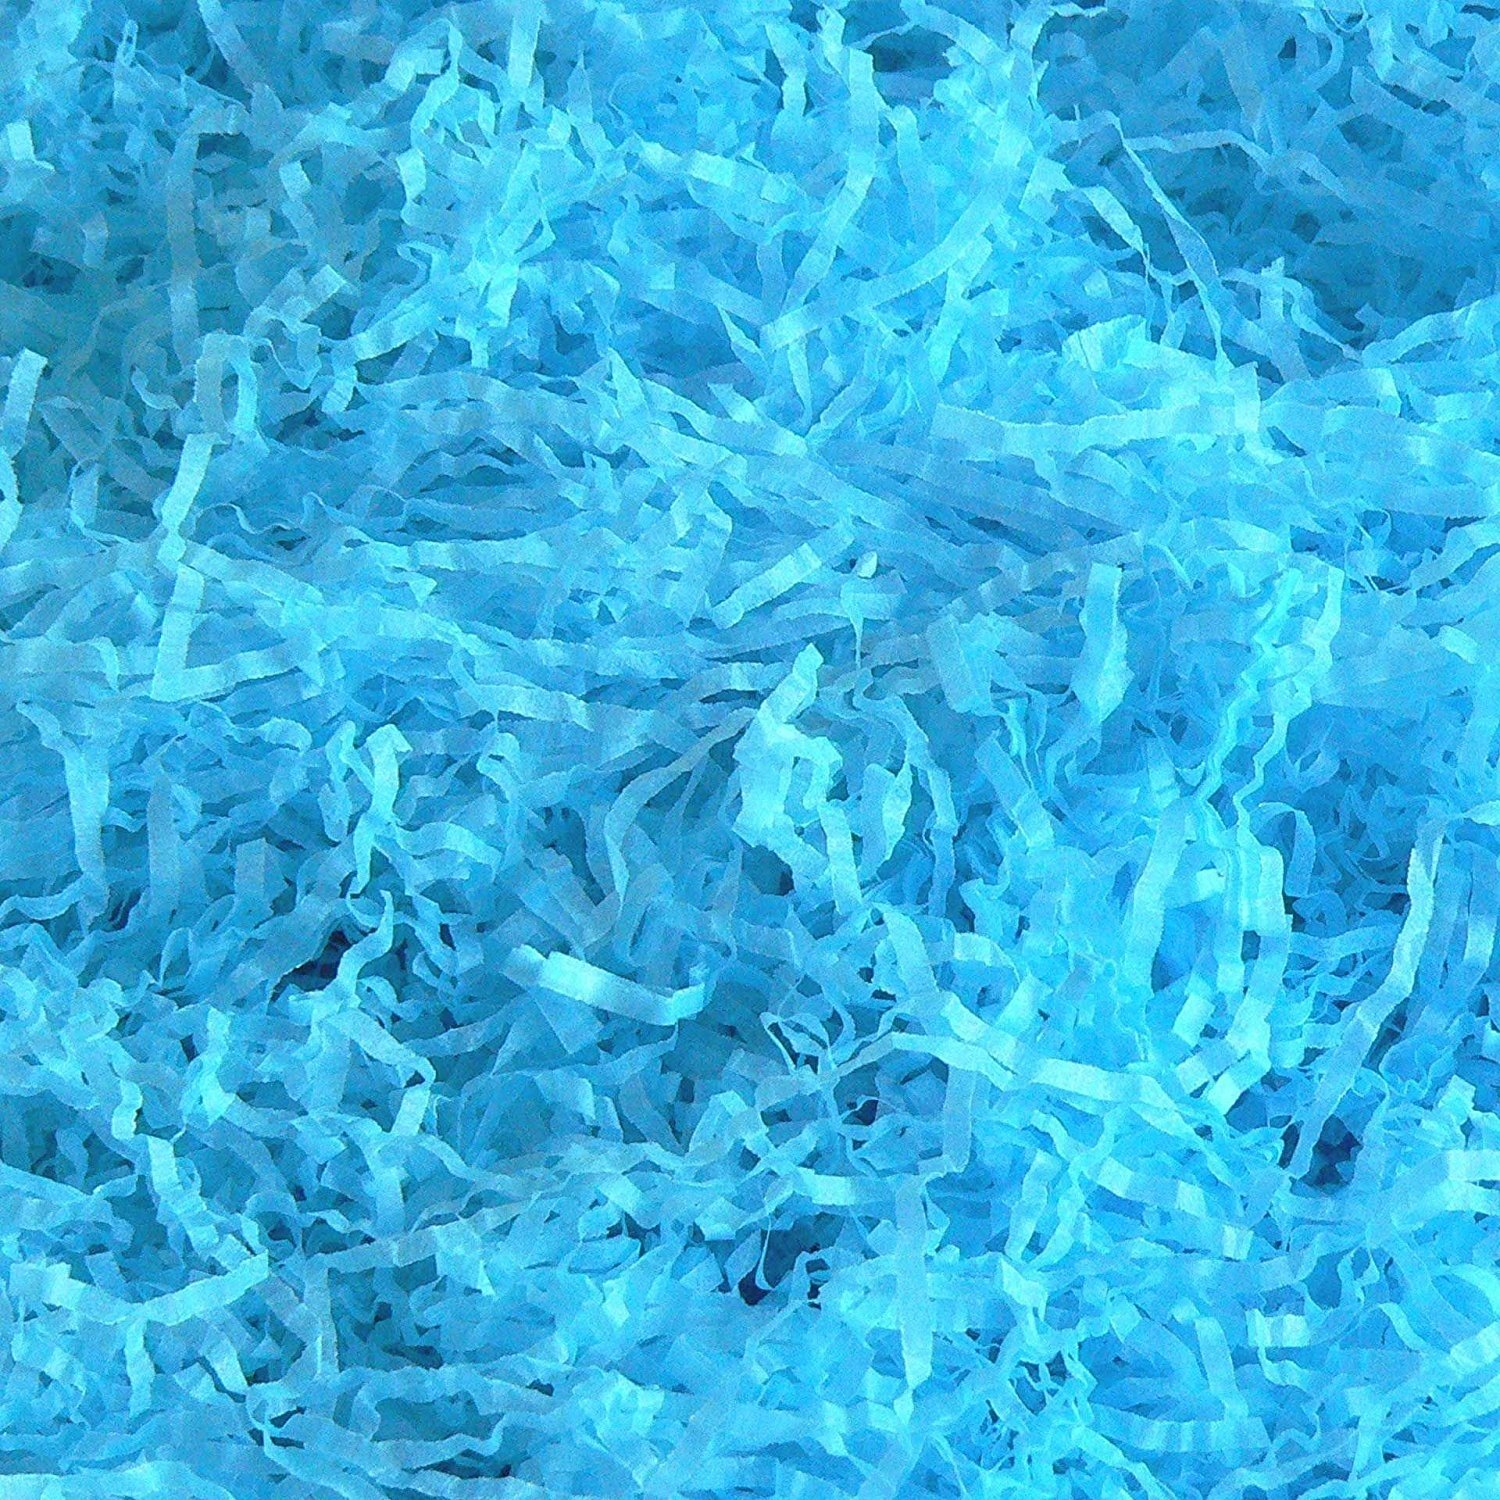 SKY BLUE EXTRA SOFT SHREDDED TISSUE PAPER FOR GIFT BOXES HAMPERS AND PACKAGING (1KG) WE CAN SOURCE IT LTD